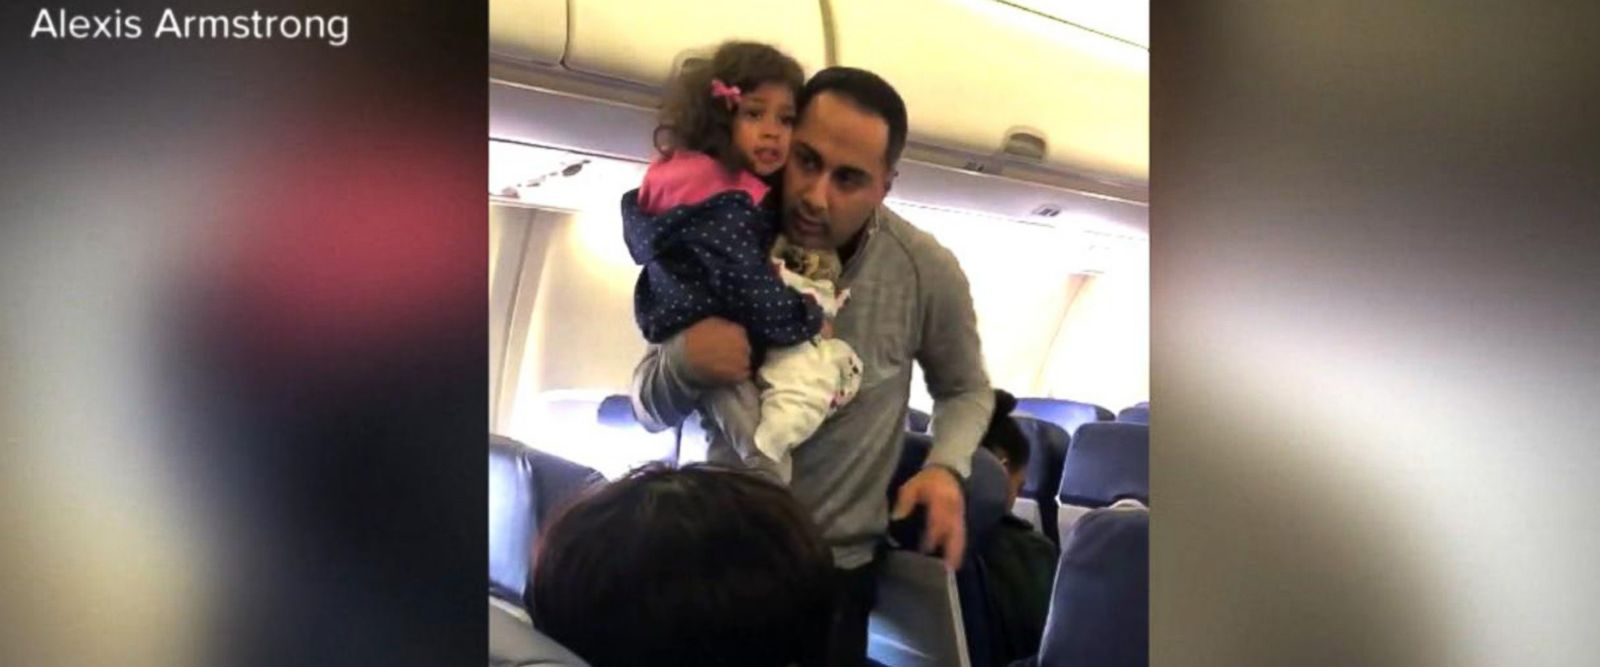 VIDEO: Unfriendly skies: Dad, toddler kicked off of flight, and other recent airline issues